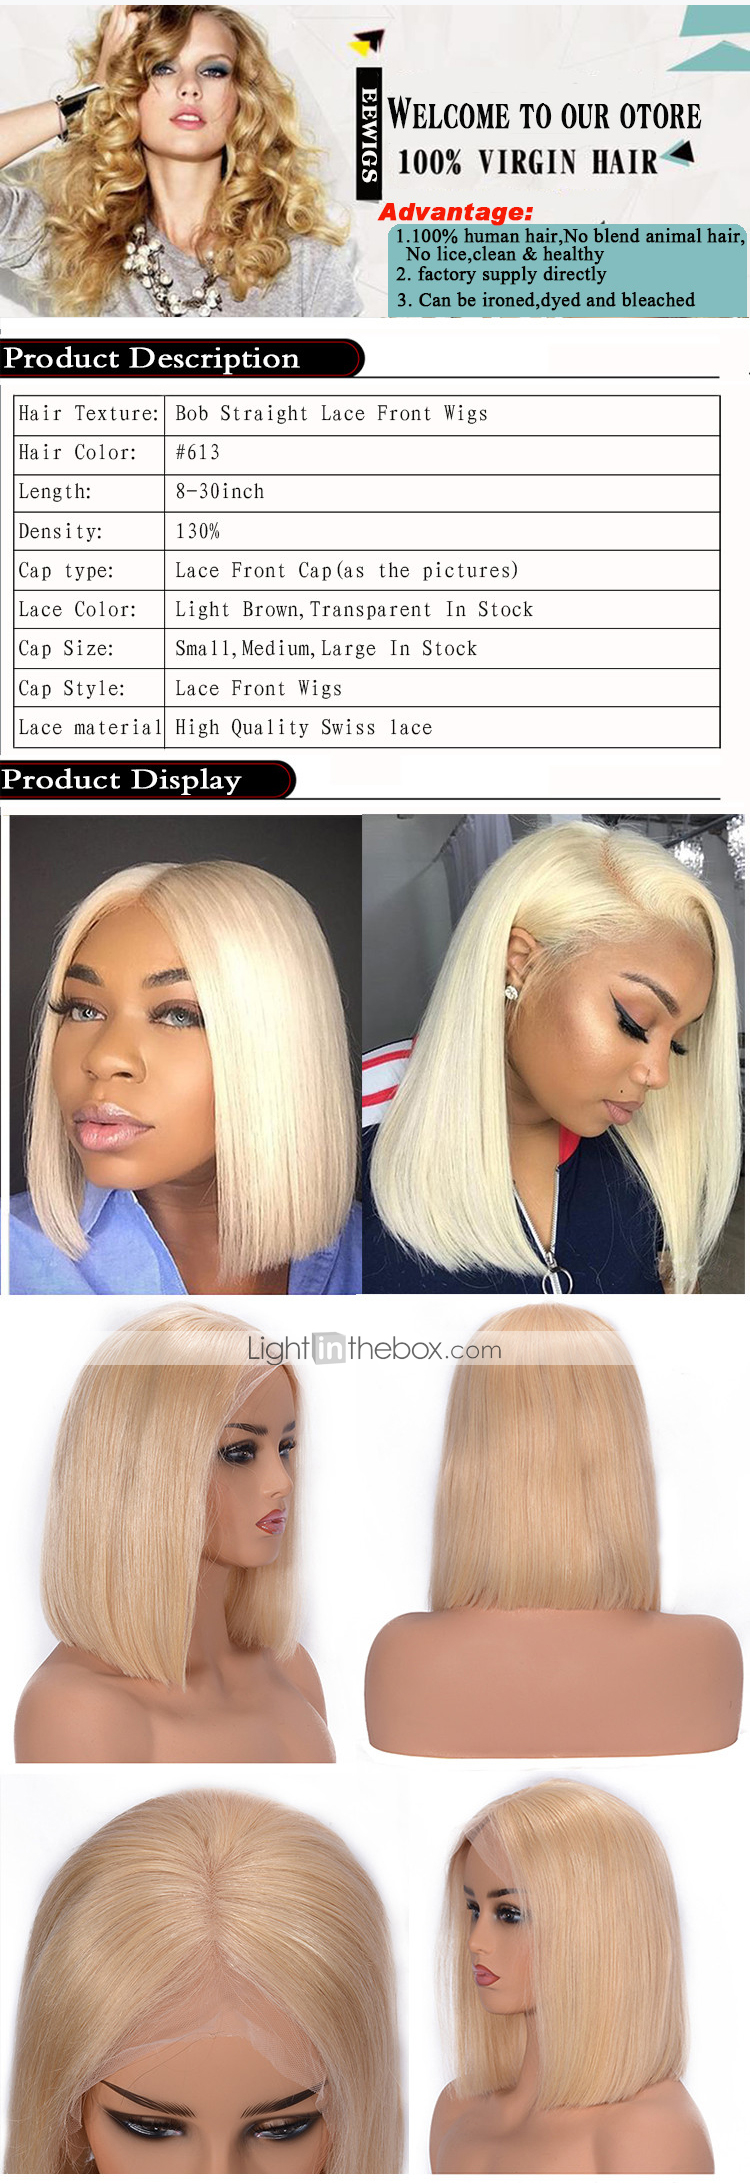 Human Hair Lace Front Wig Brazilian Hair Straight Blonde Wig Bob